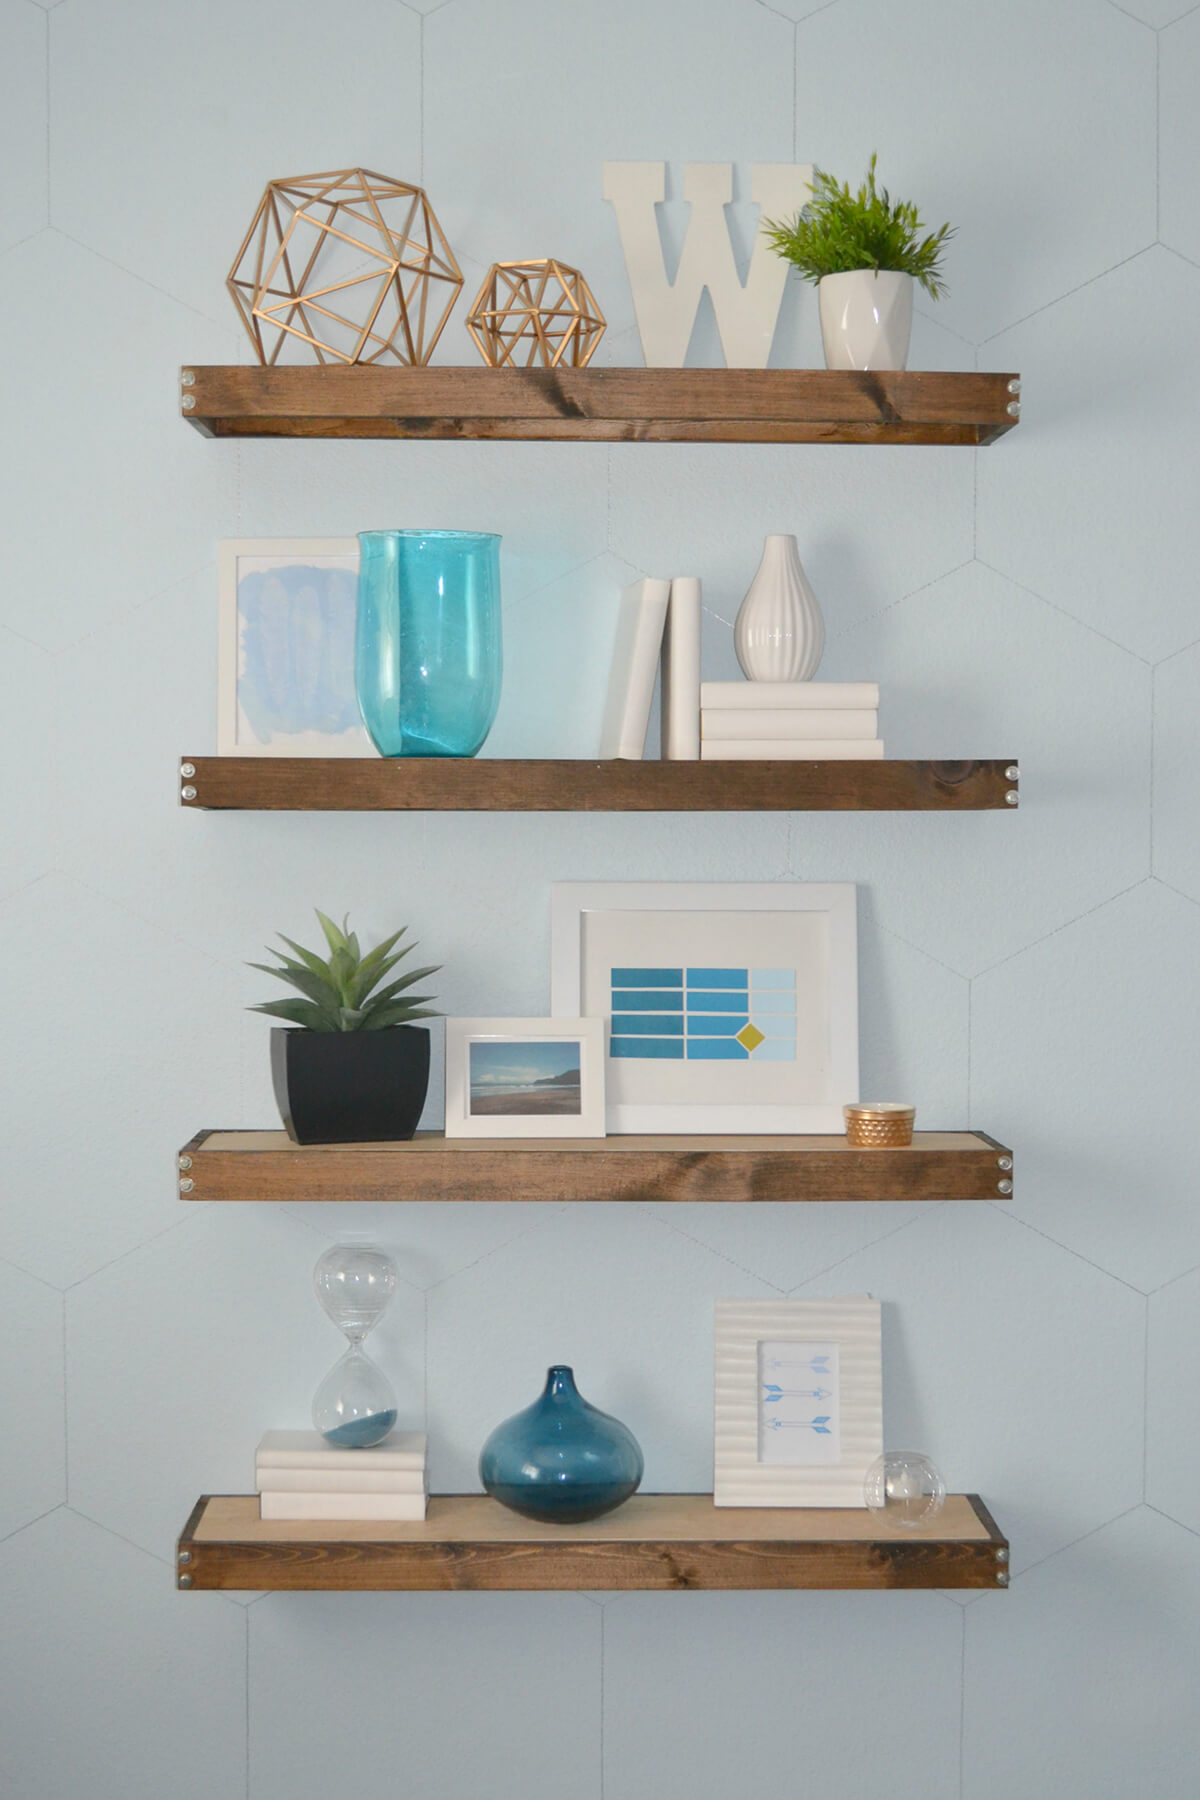 best diy floating shelf ideas and designs for homebnc design tures two toned clean cut vinyl floor tiles wall shelves electronic equipment small desk ikea inch wide french cleat